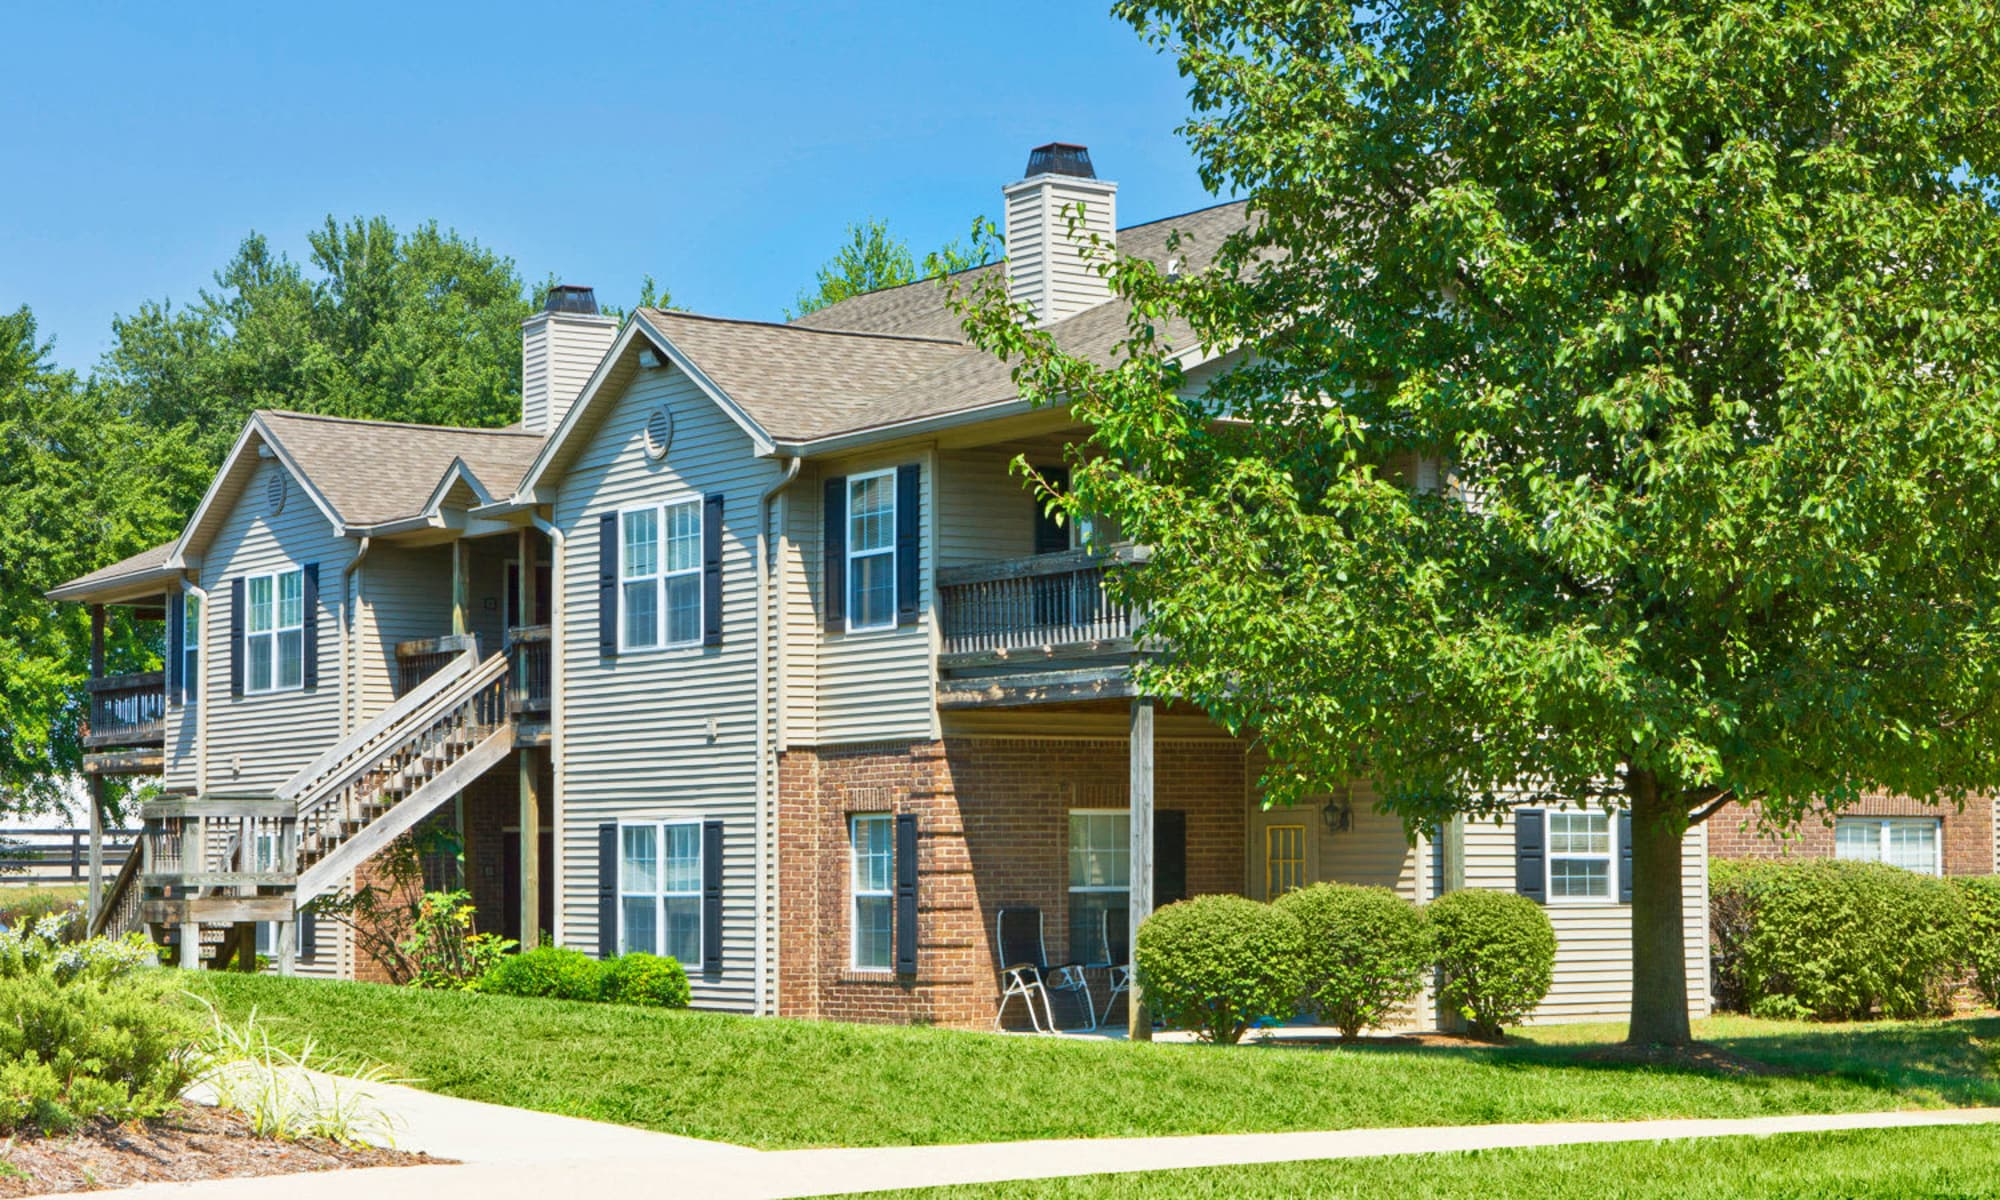 Apartments at Cooper Creek in Louisville, Kentucky